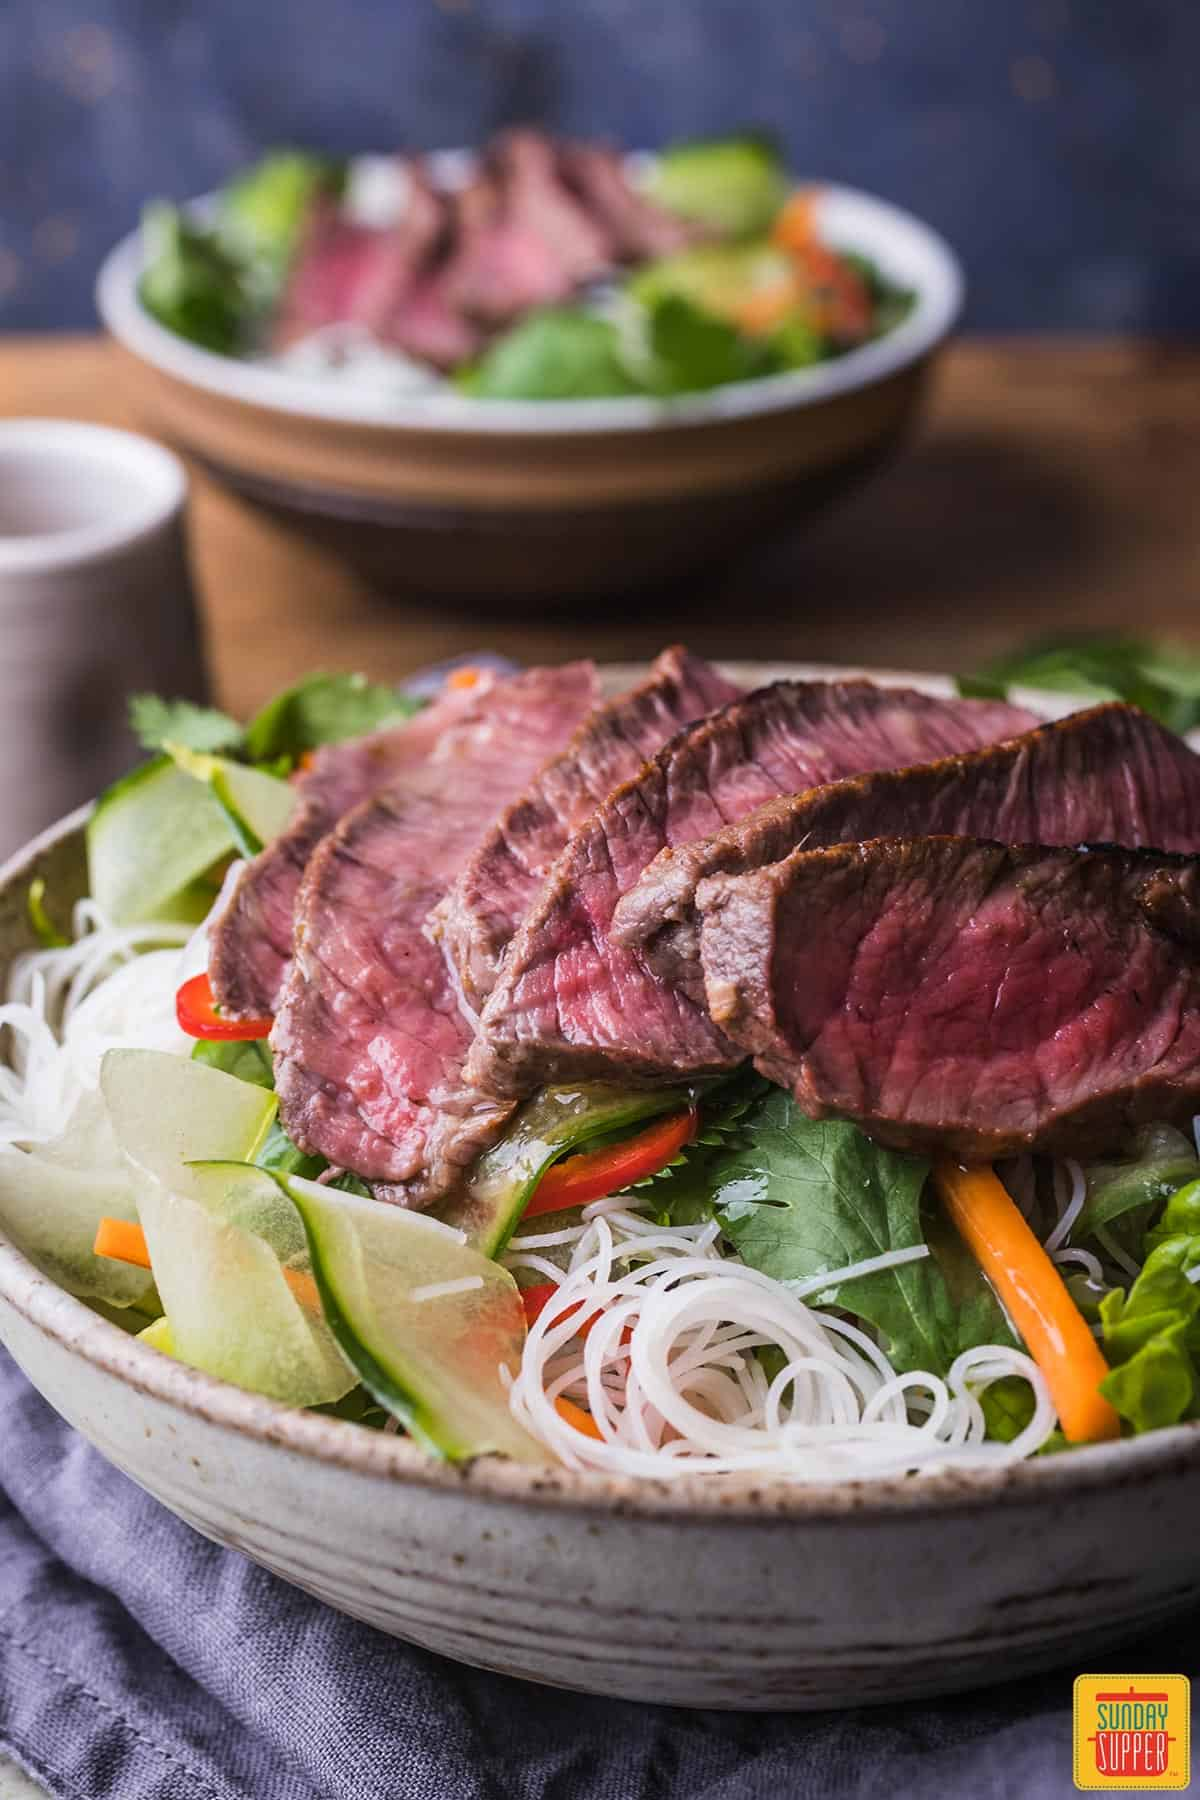 Sirloin steak sliced thinly over rice noodles and crisp veggies in a bowl